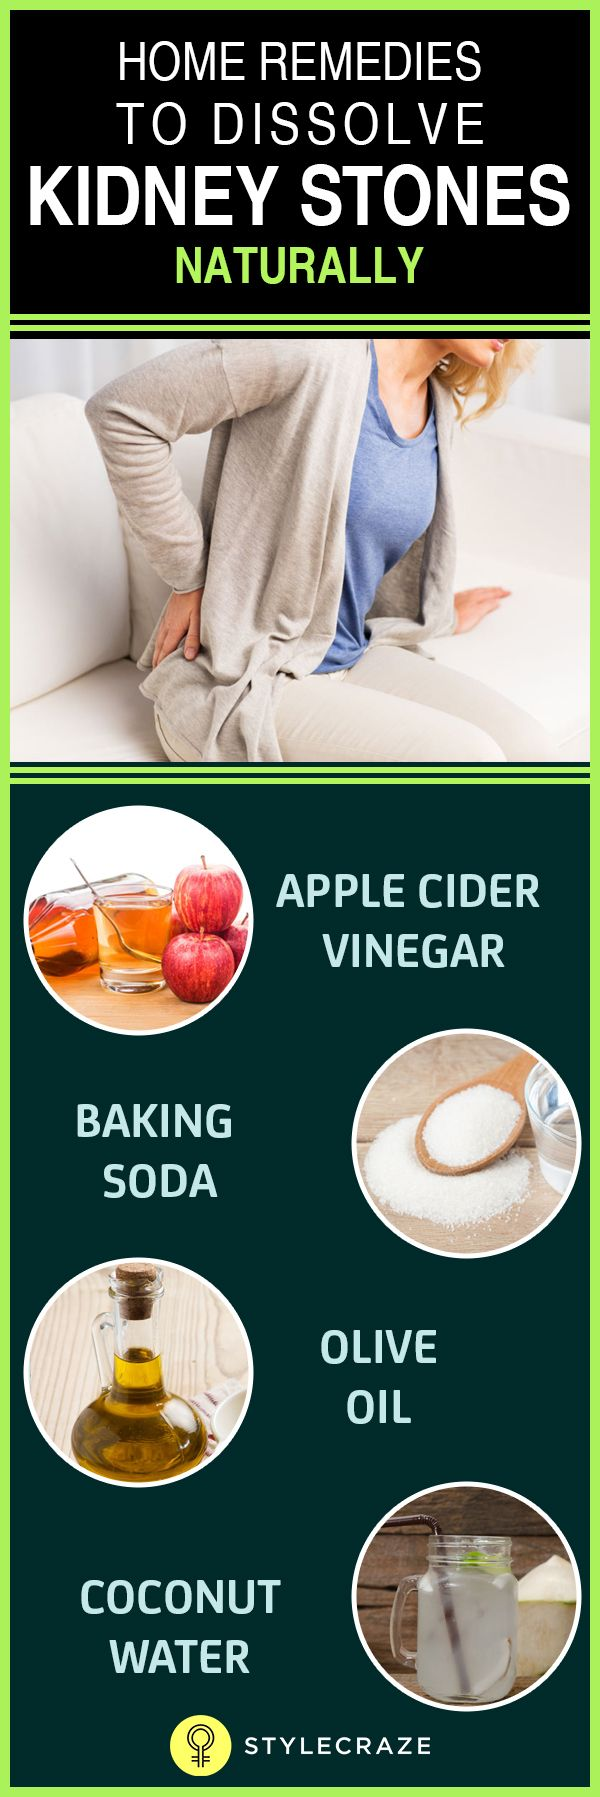 Dissolve Kidney Stones Naturally Home